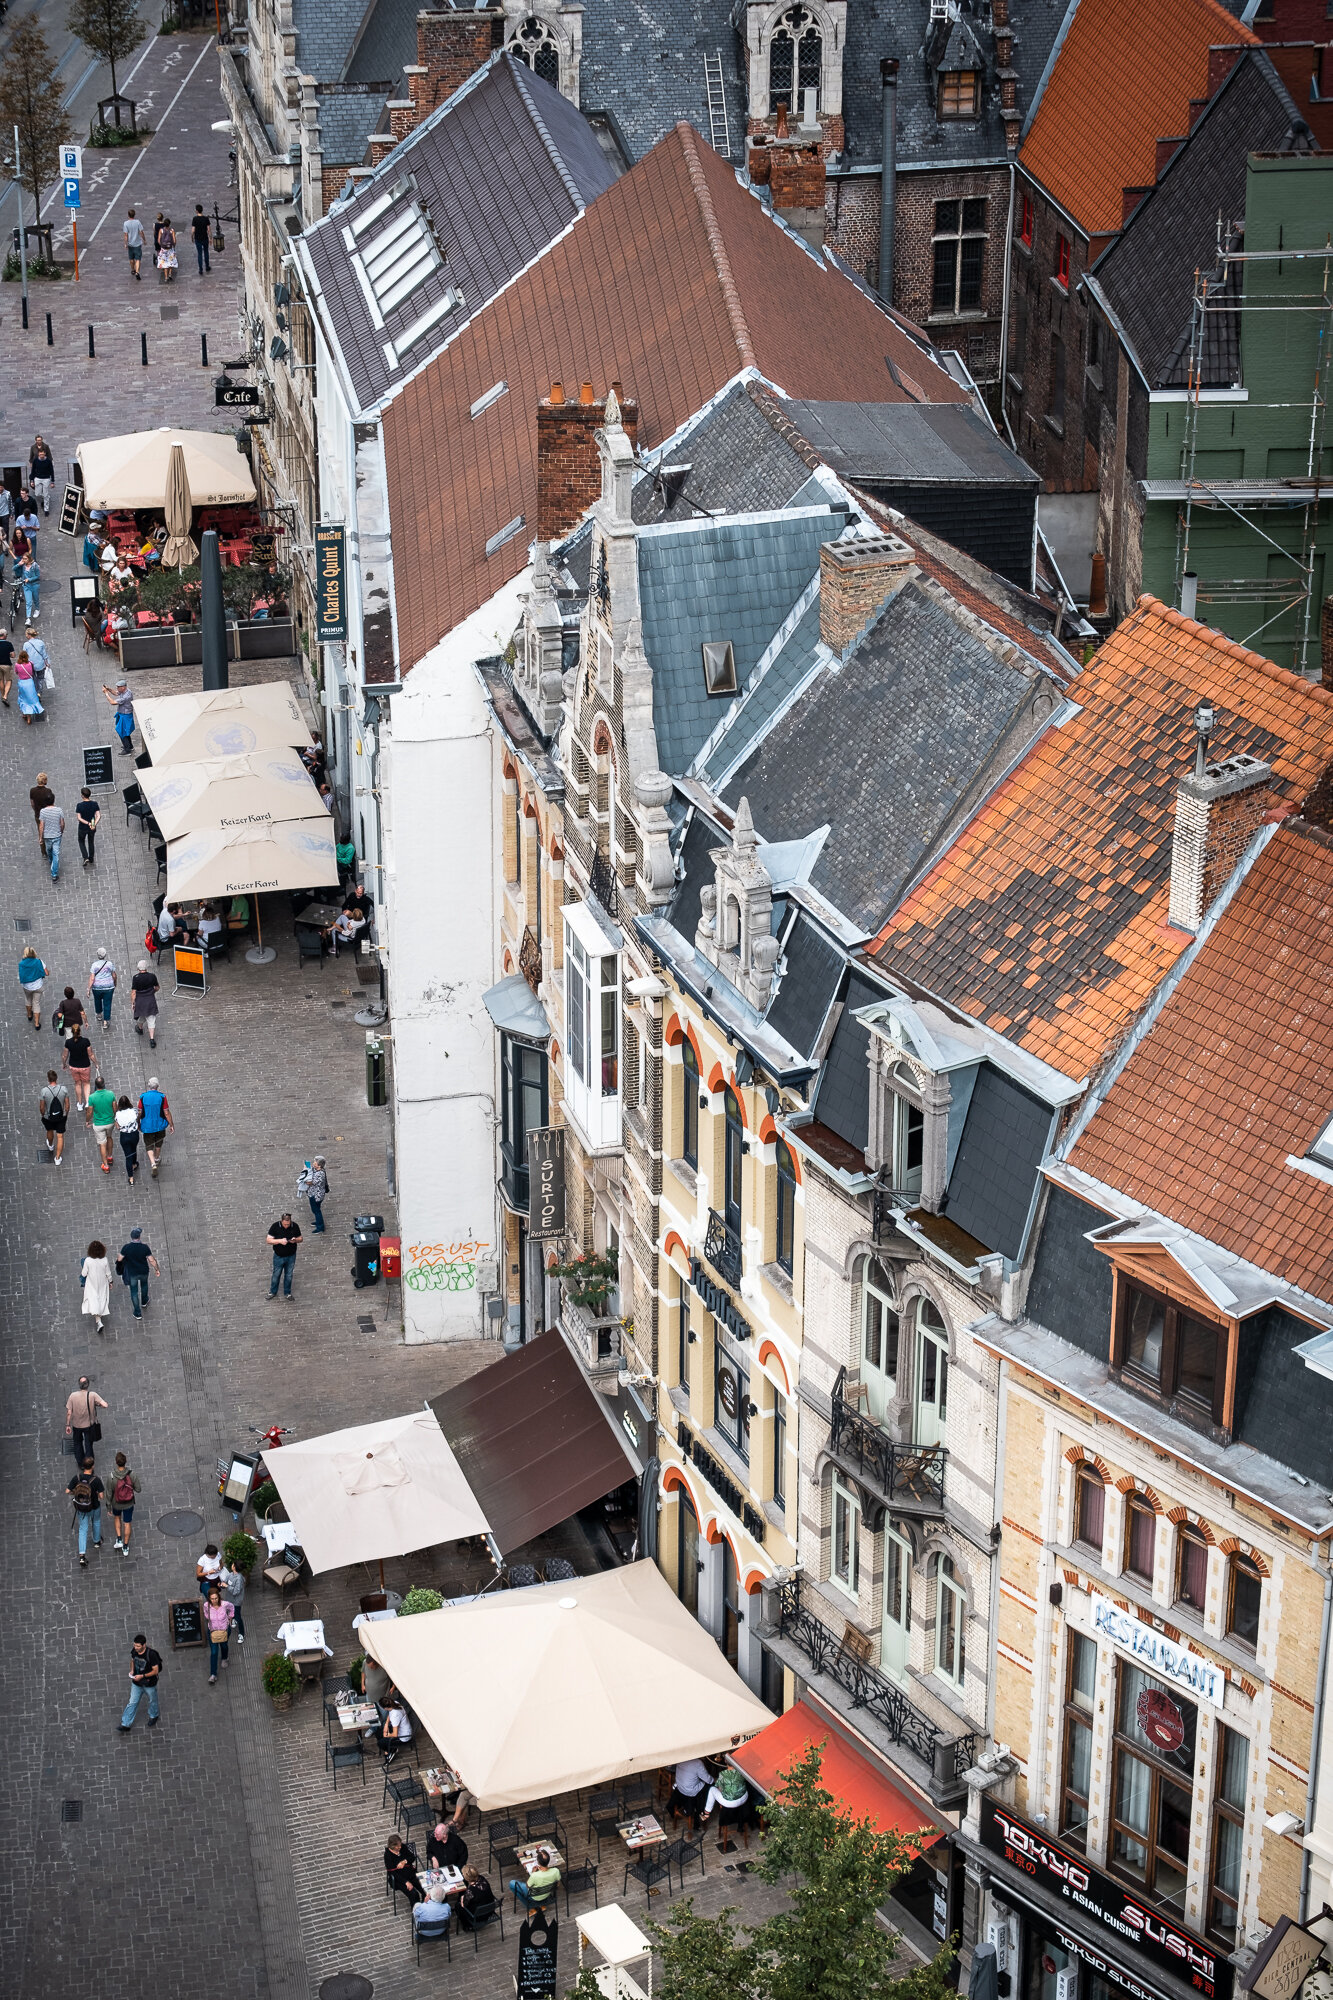 The view from atop the Belfry of Ghent